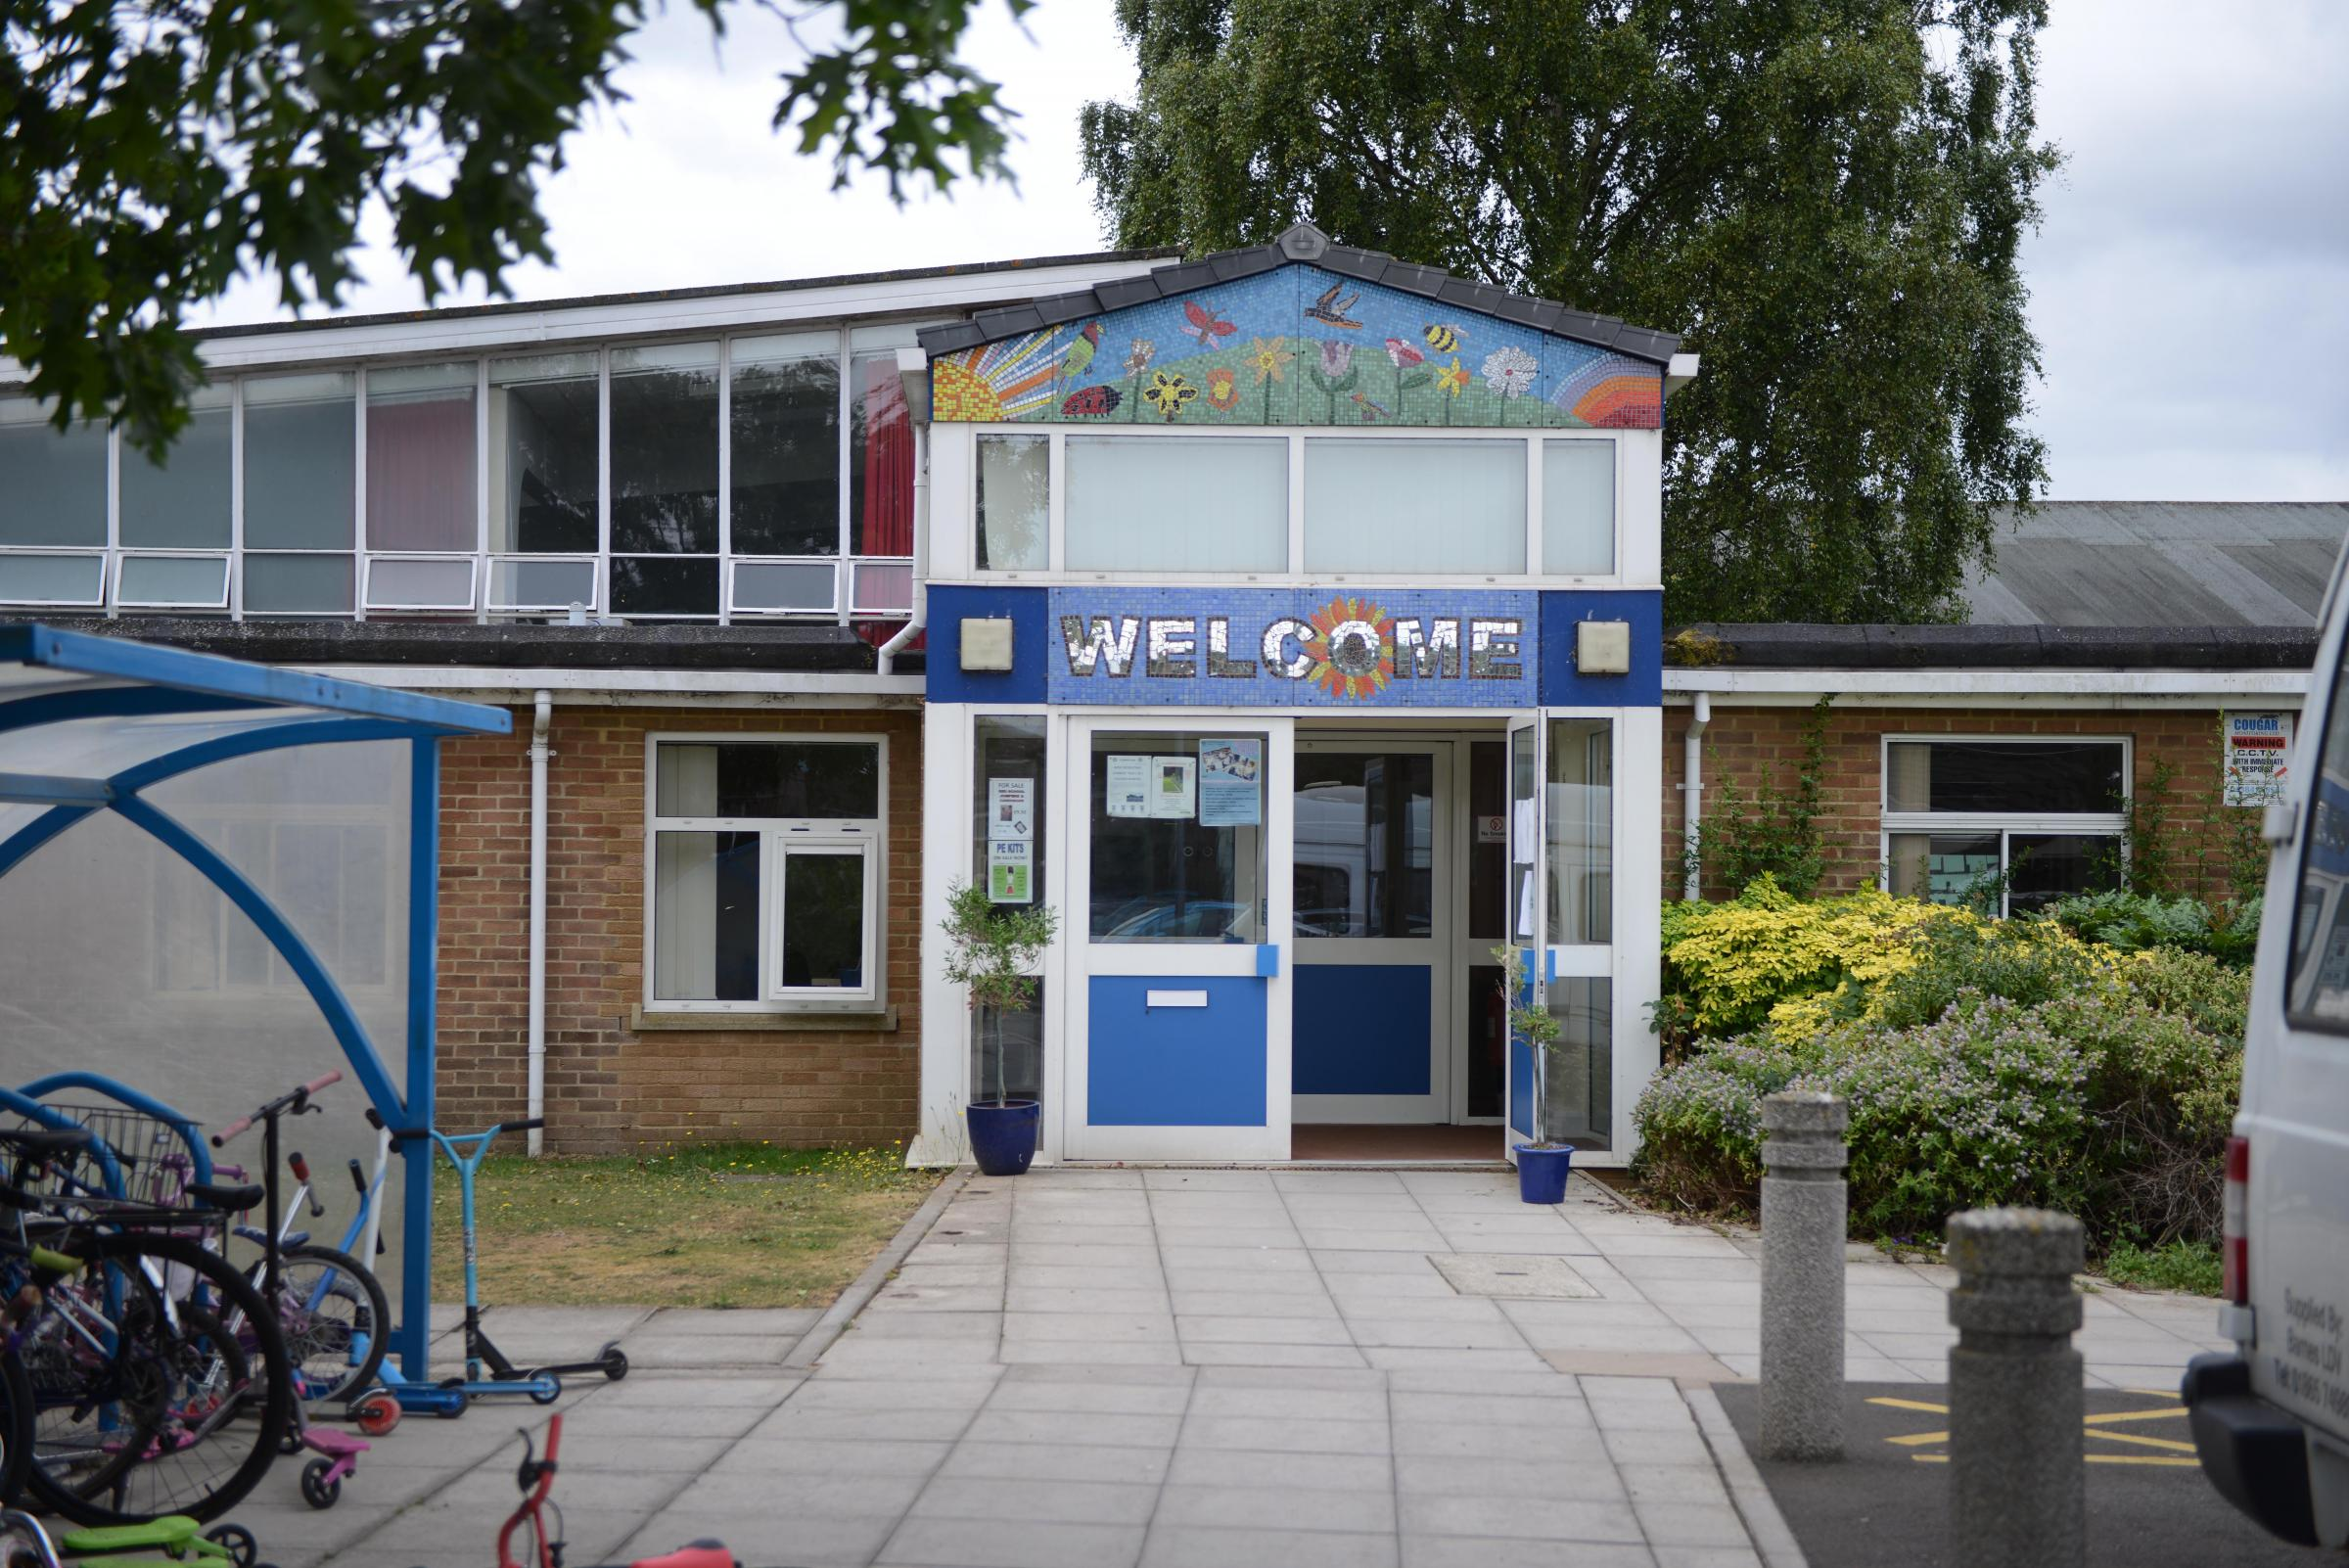 Orchard Meadow Primary School. Pic: Richard Cave